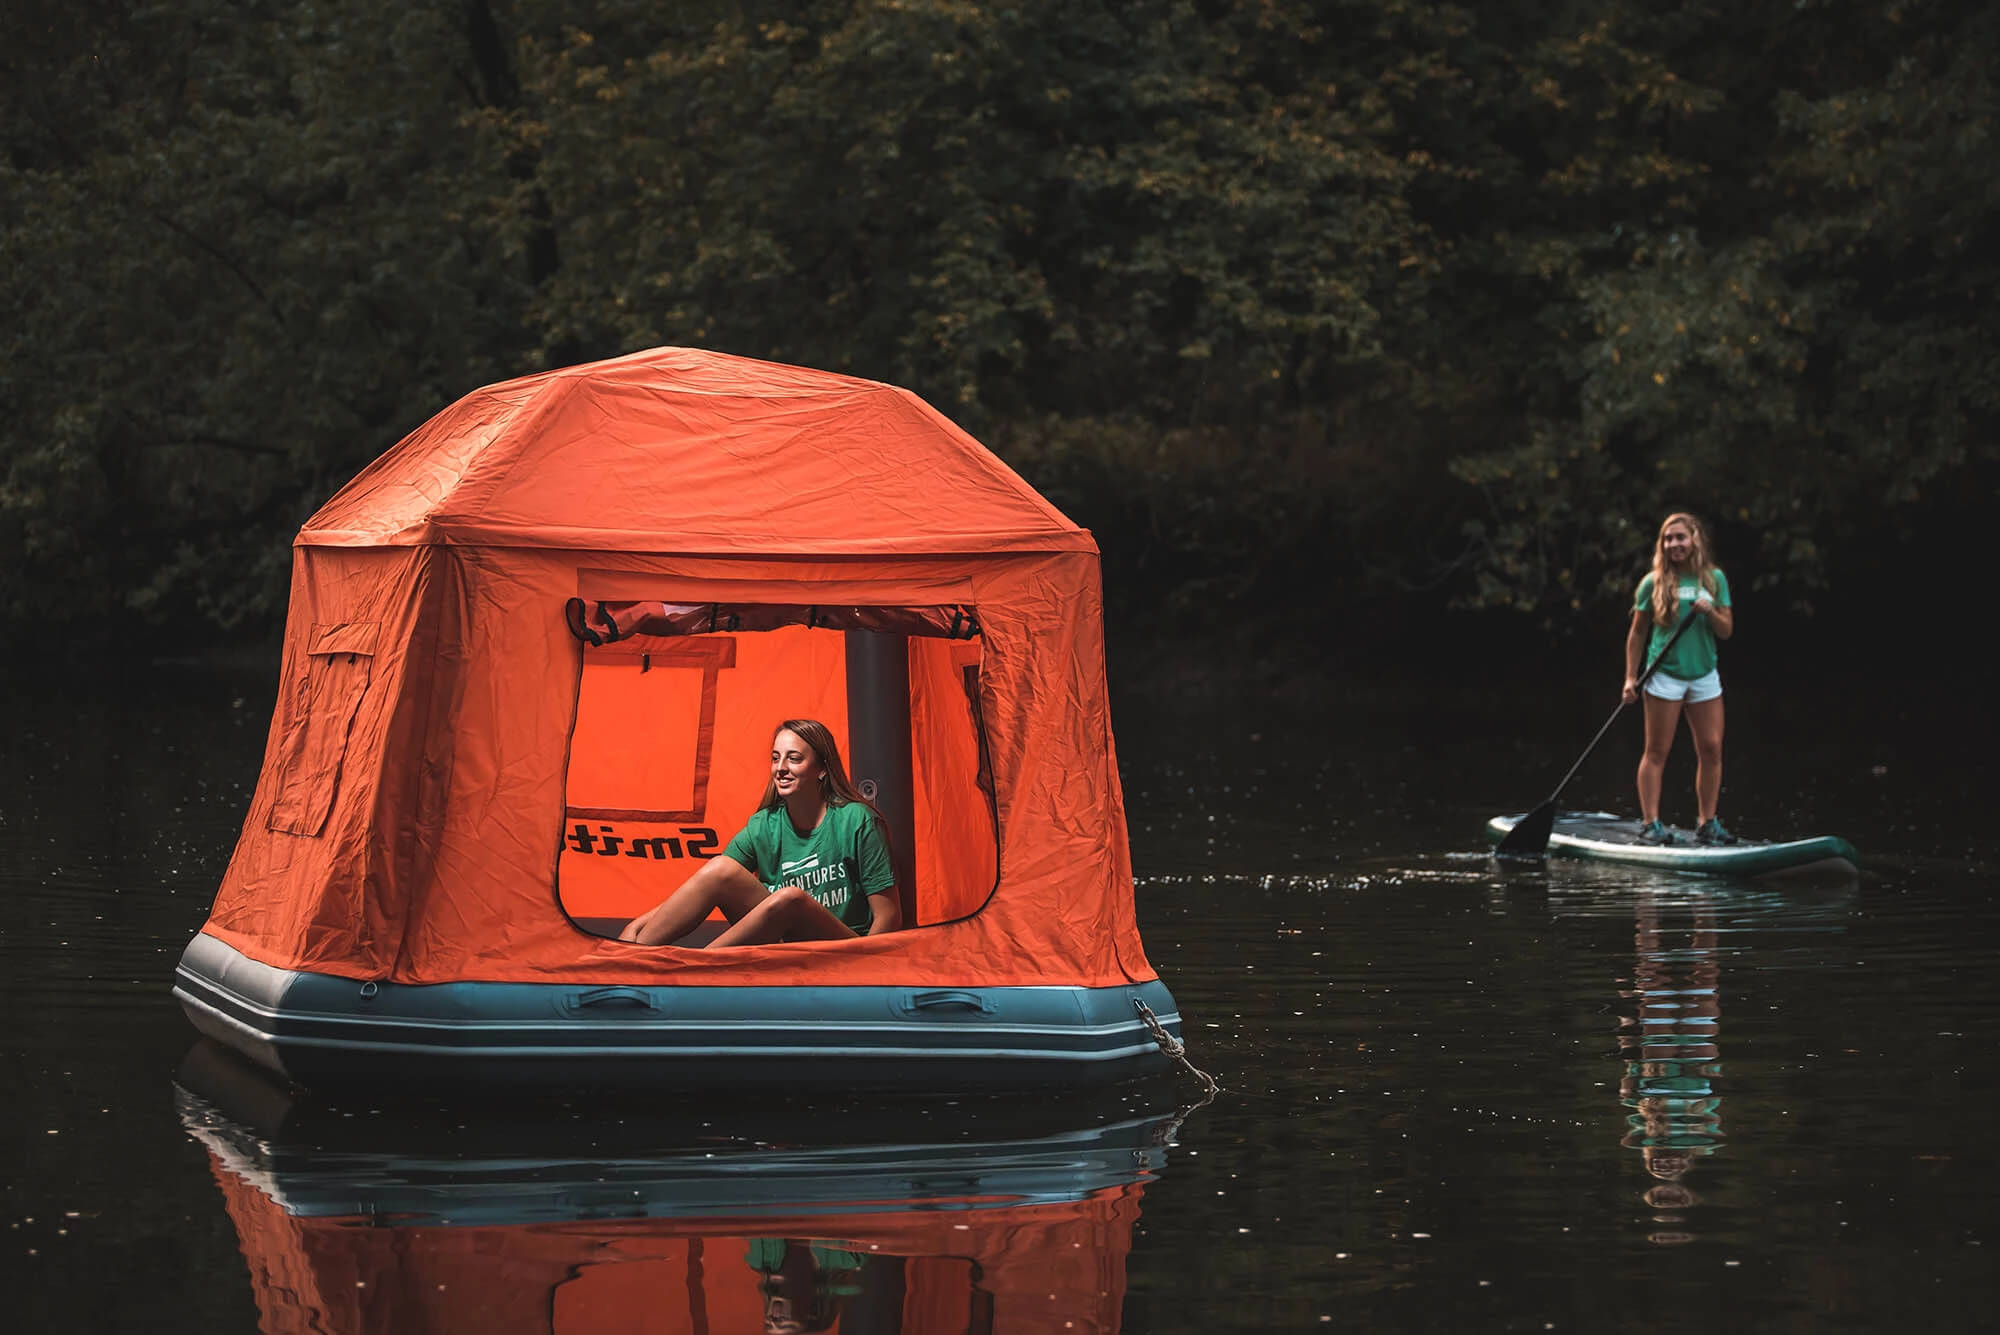 Floating Tent's May Be the Dumbest Invention of 2019